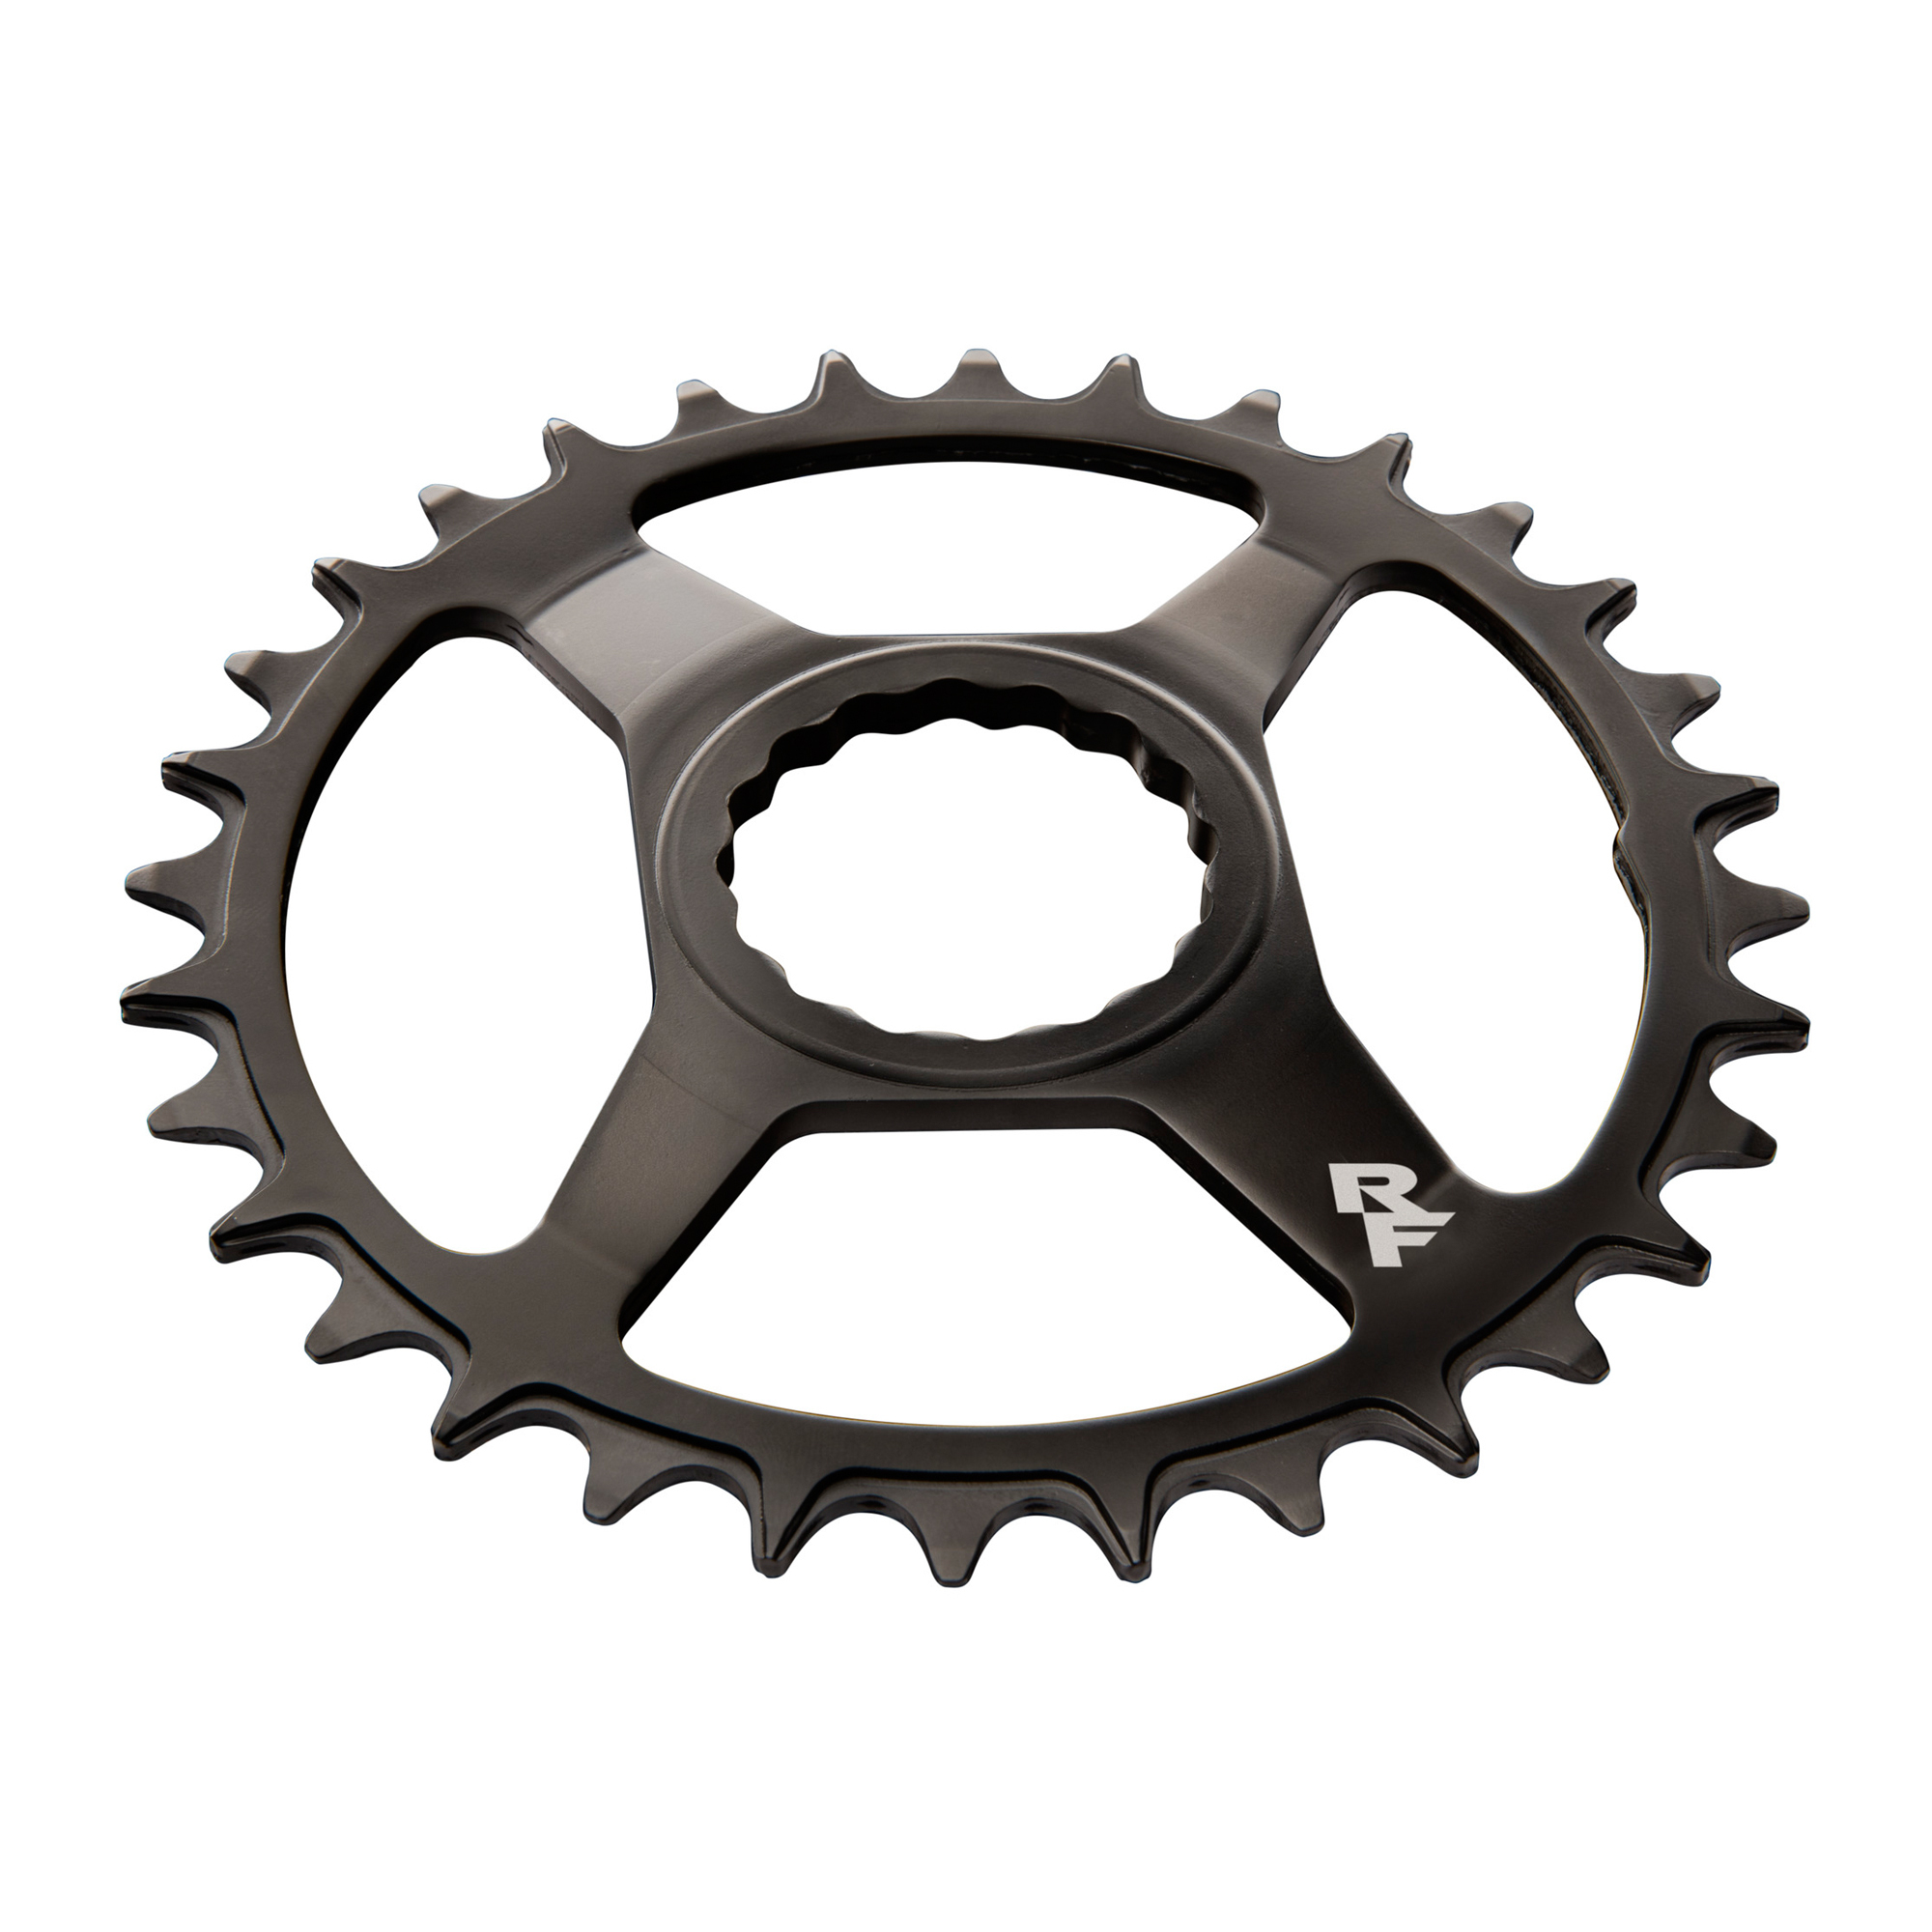 Race Face Narrow/wide Single Chainring 32t Black